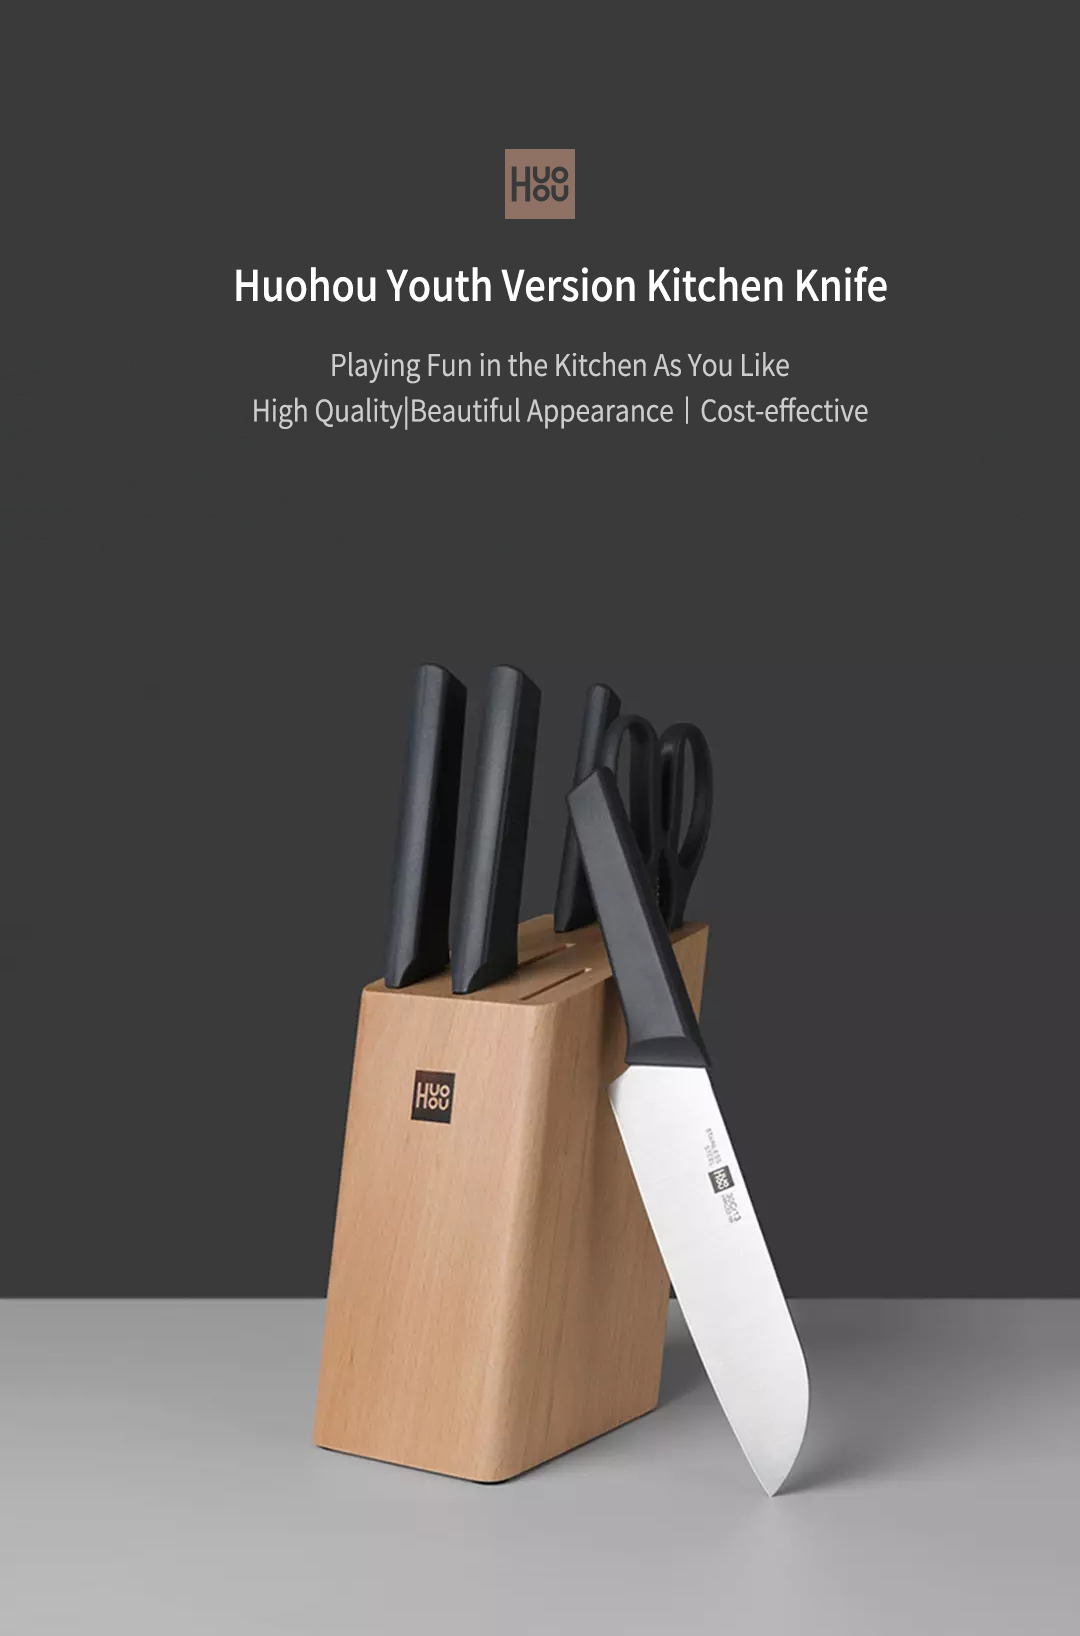 HuoHou 4 Pcs Non-Stick Stainless Steel Kitchen Knife Set Chef Knife Chopper Cleaver Slicer Fruit Knife Blade from Xiaomi Youpin